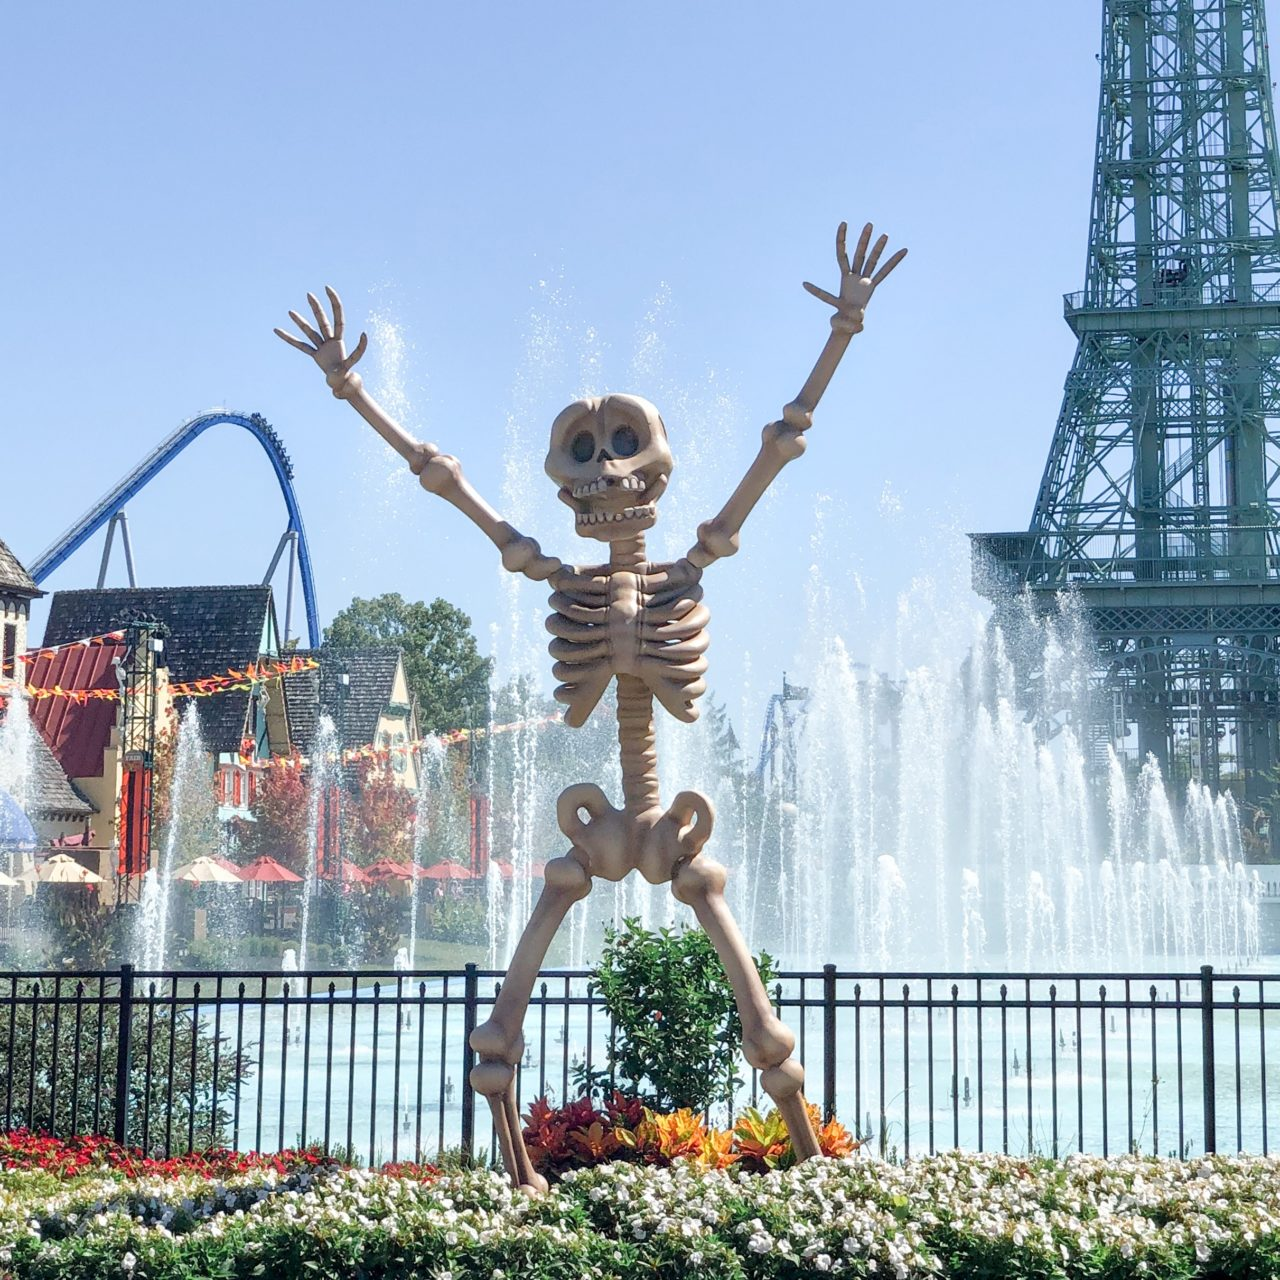 Tricks and Treats Fall Fest at Kings Island